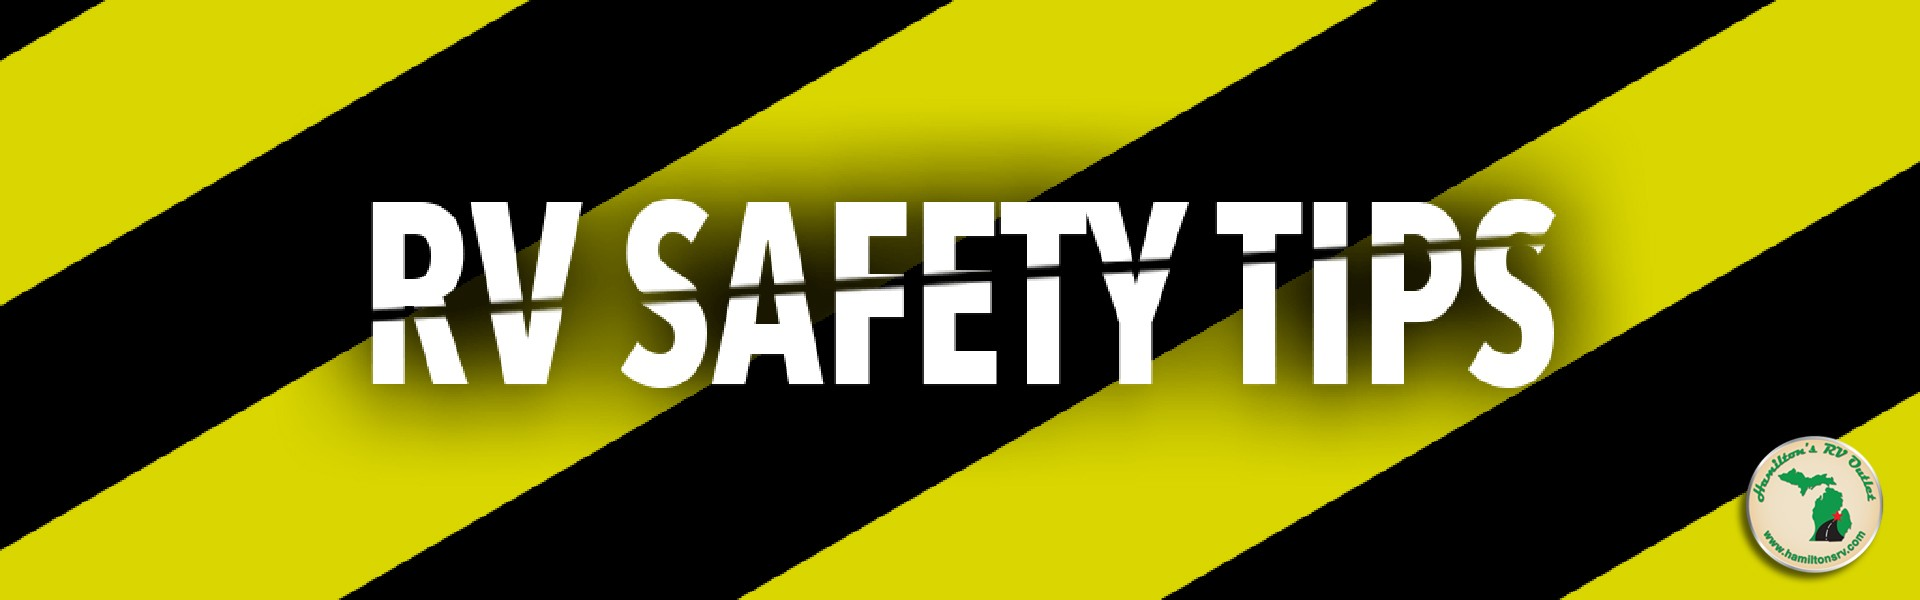 RV safety tips Banner